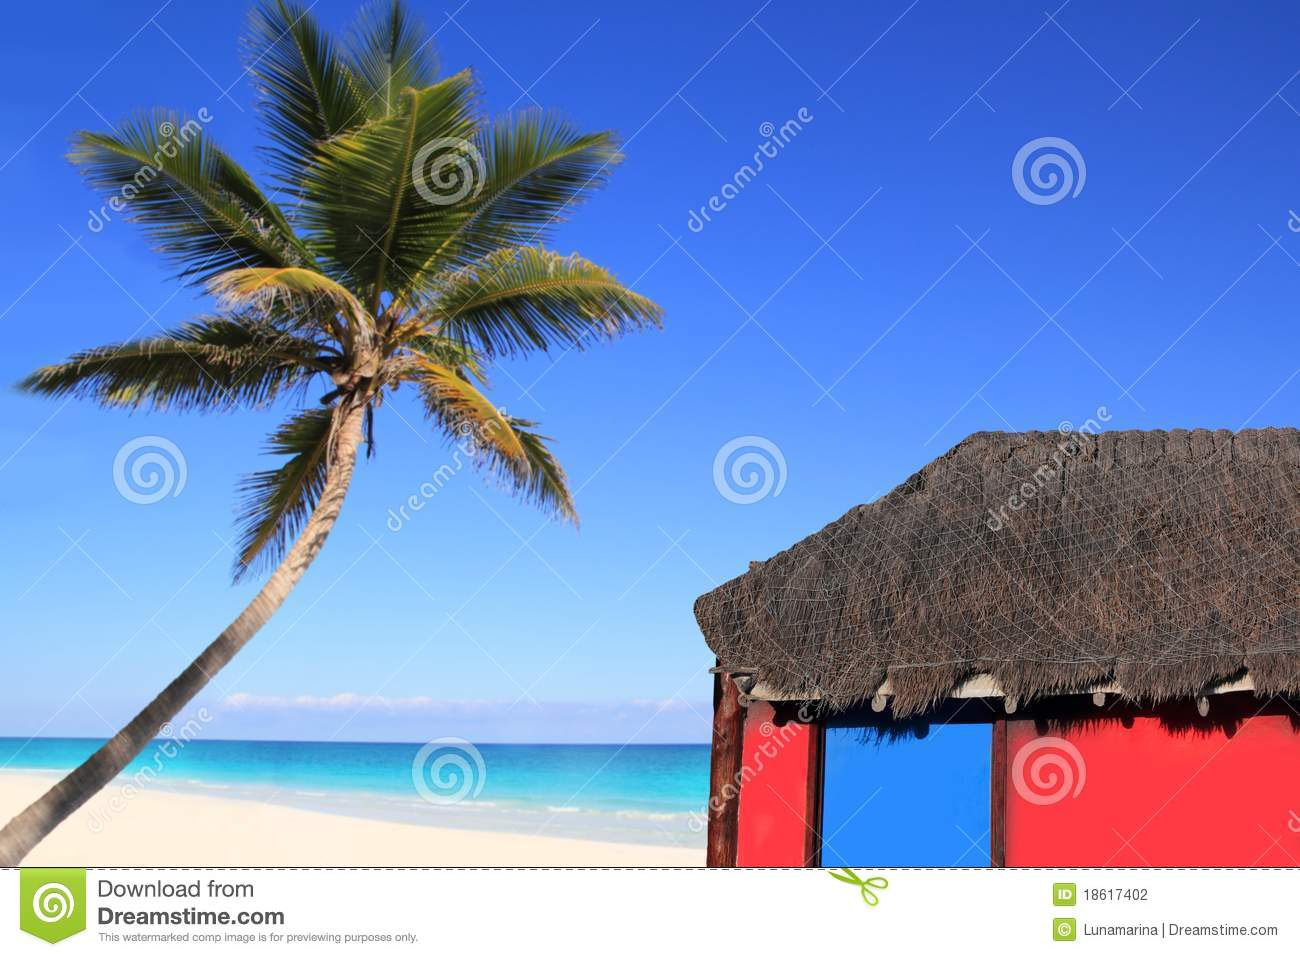 Caribbean coconut palm tree and red hut cabin